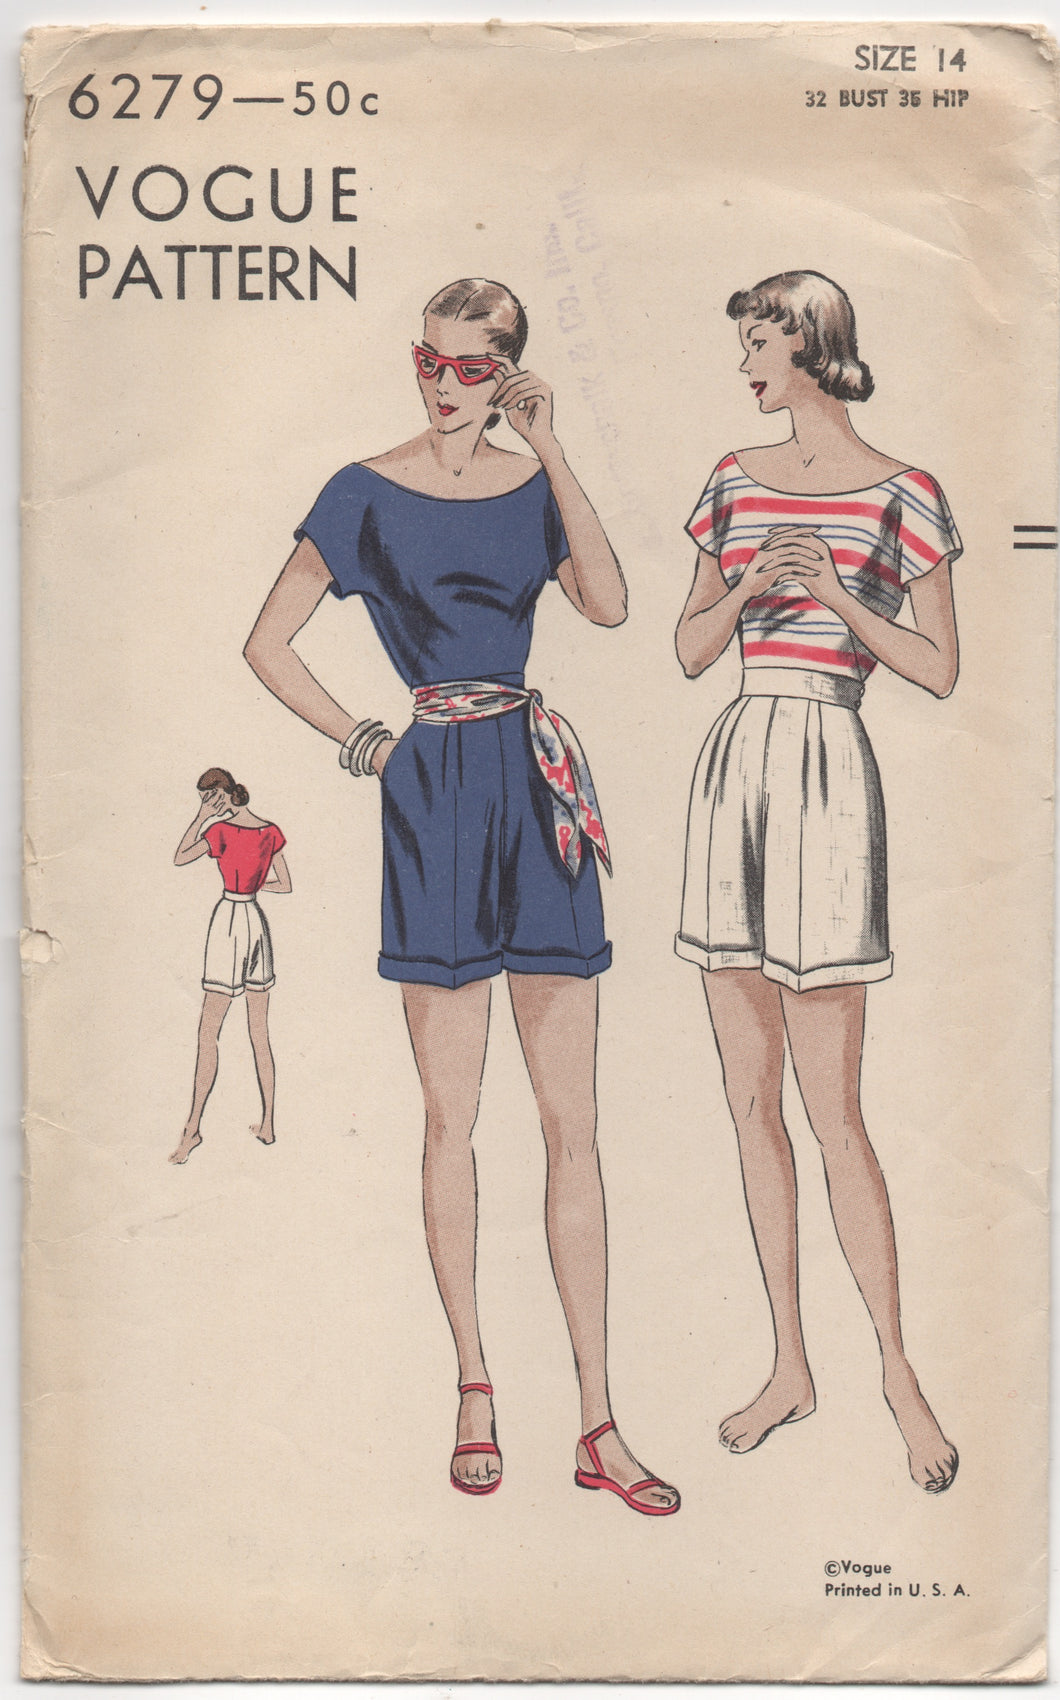 1940's Vogue Playsuit with Blouse with wide neckline and high waisted Shorts - Bust 32